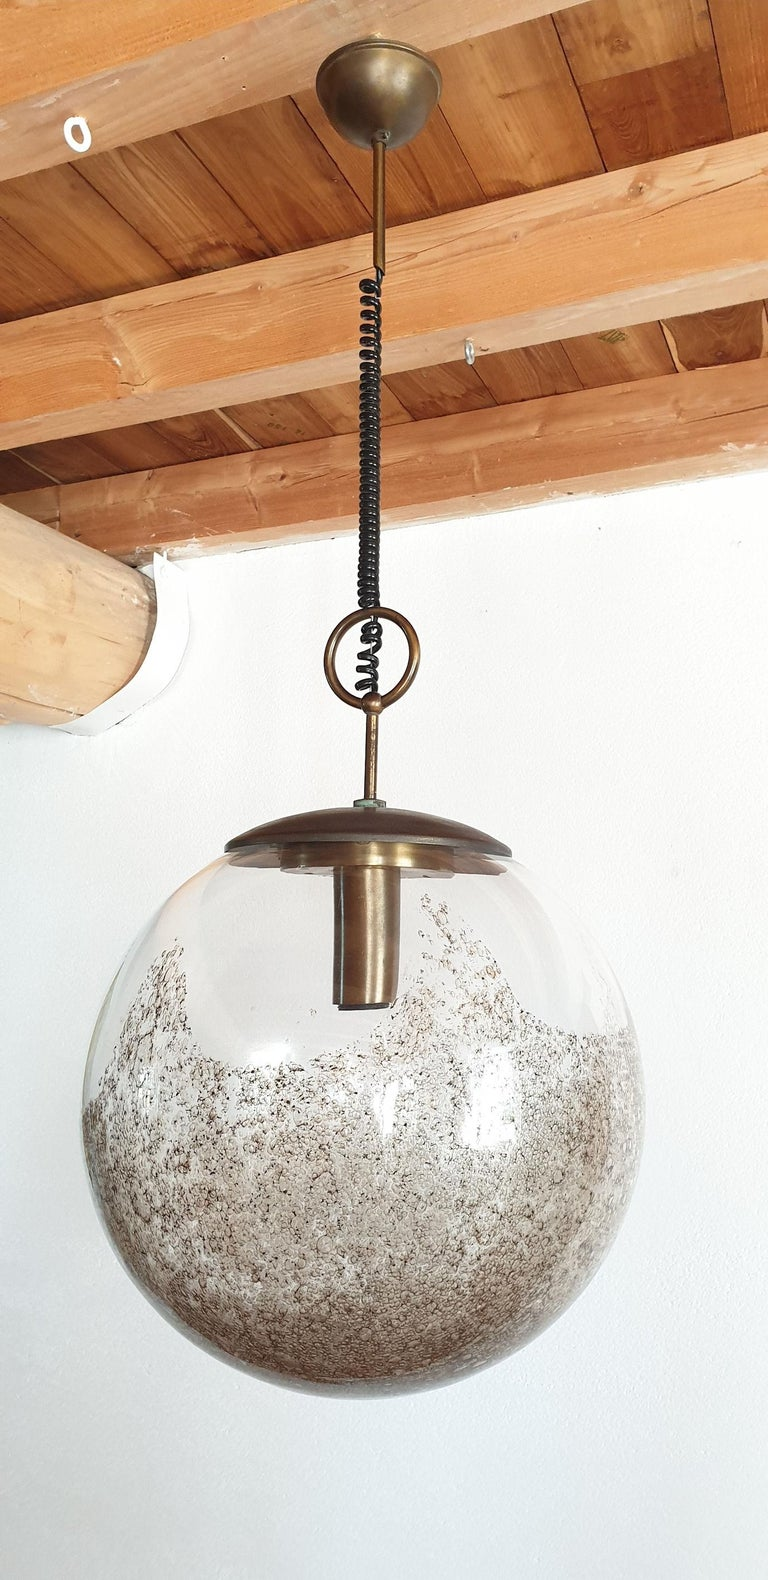 Large Murano glass ball pendant light, by Carlo Nason for Mazzega, Murano, Italy, 1960s. 